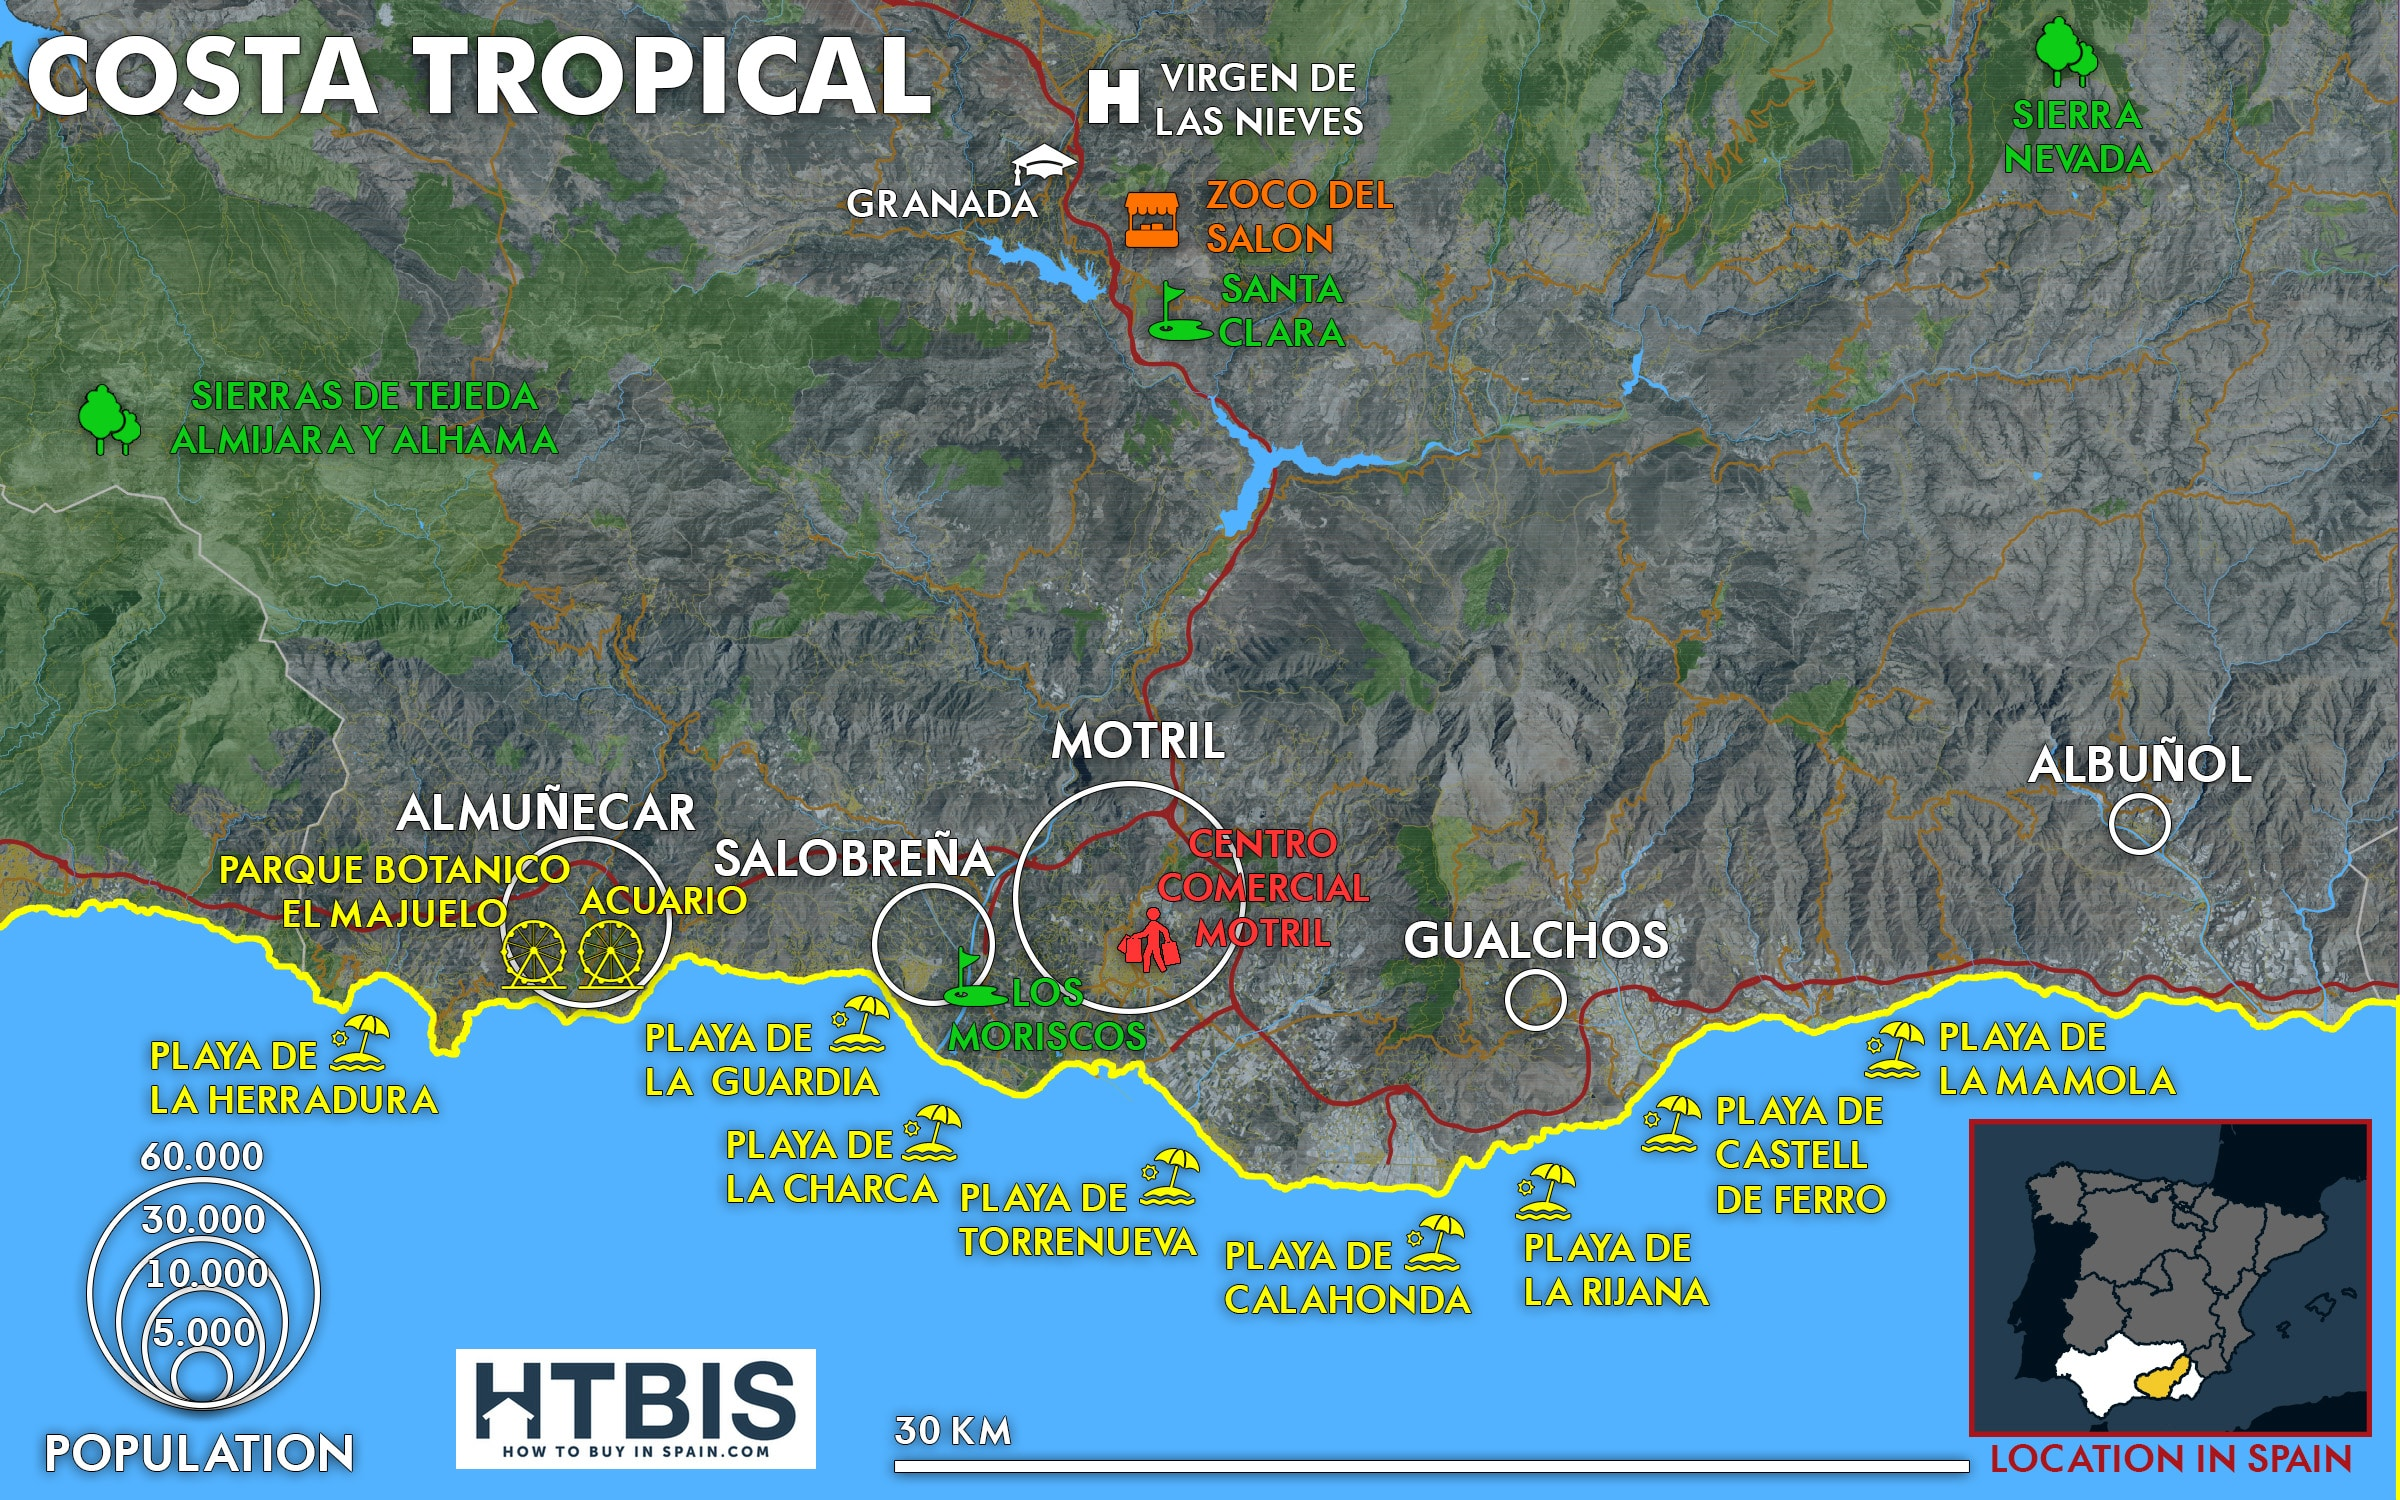 Map with all the must see places of the Costa Tropical